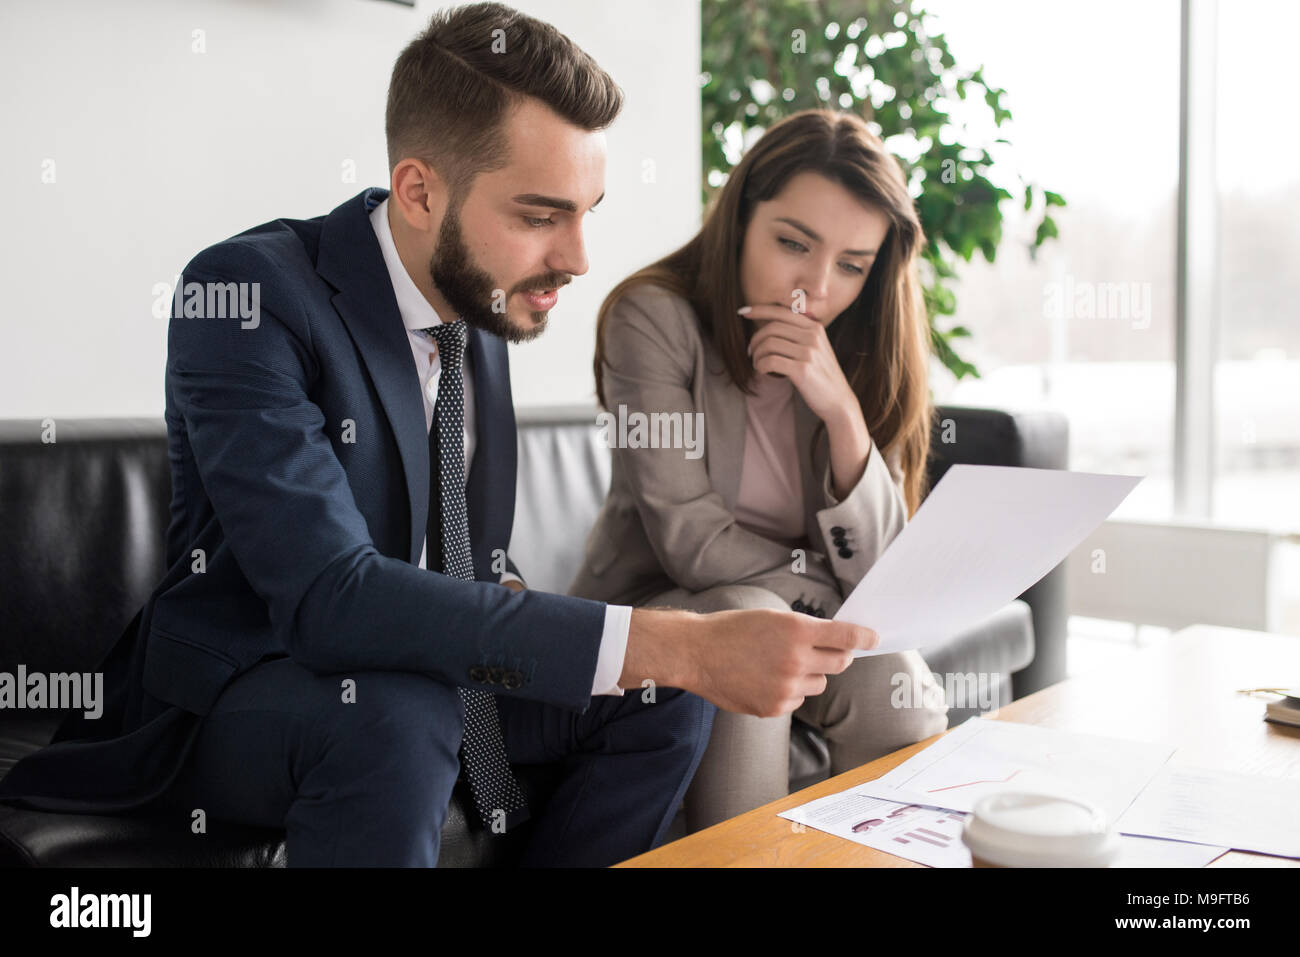 Two Modern Business People in Meeting - Stock Image